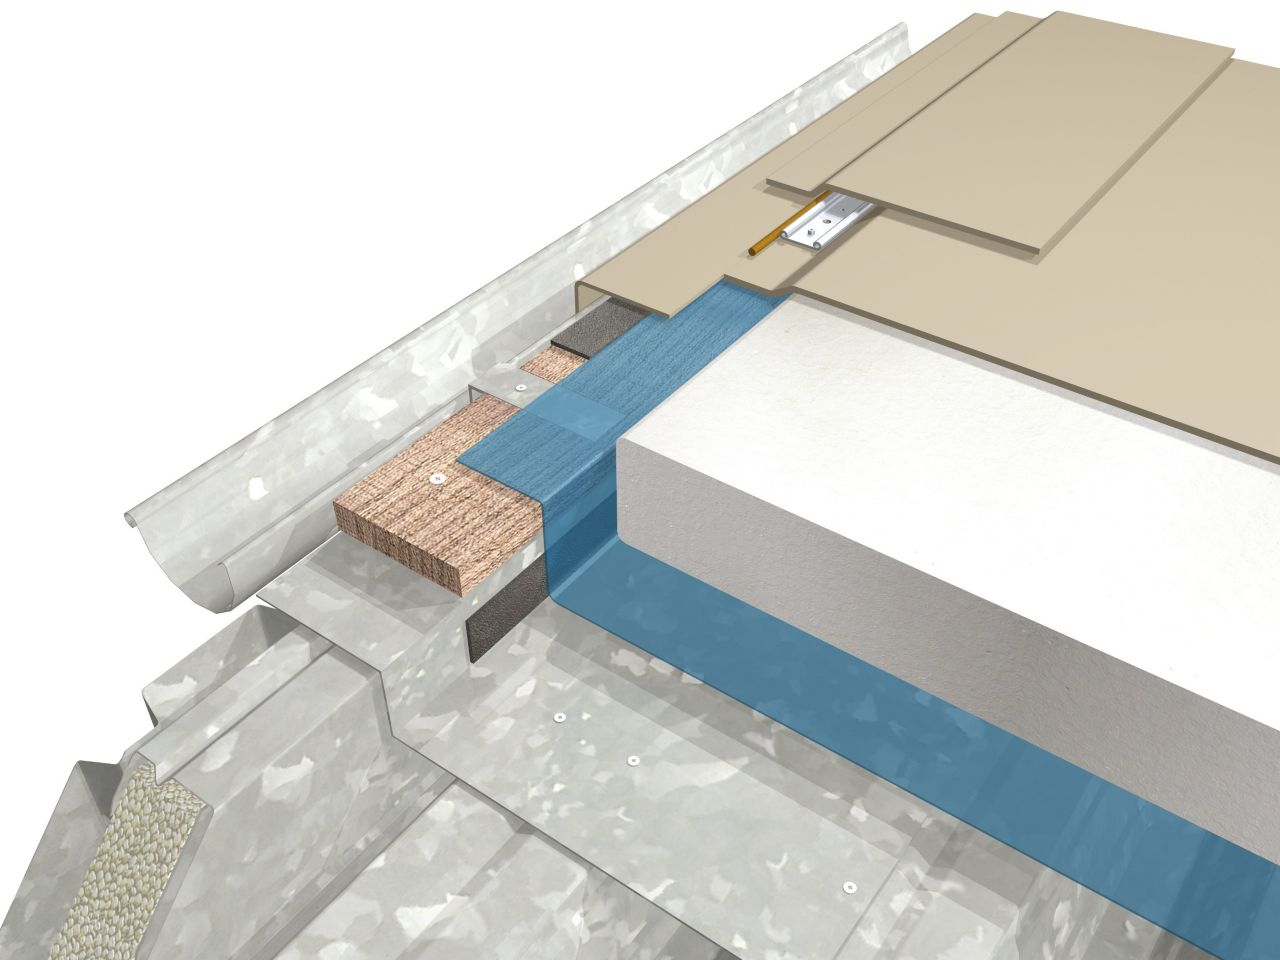 Single-ply membrane buildup 3D rendering at roof edge gutter